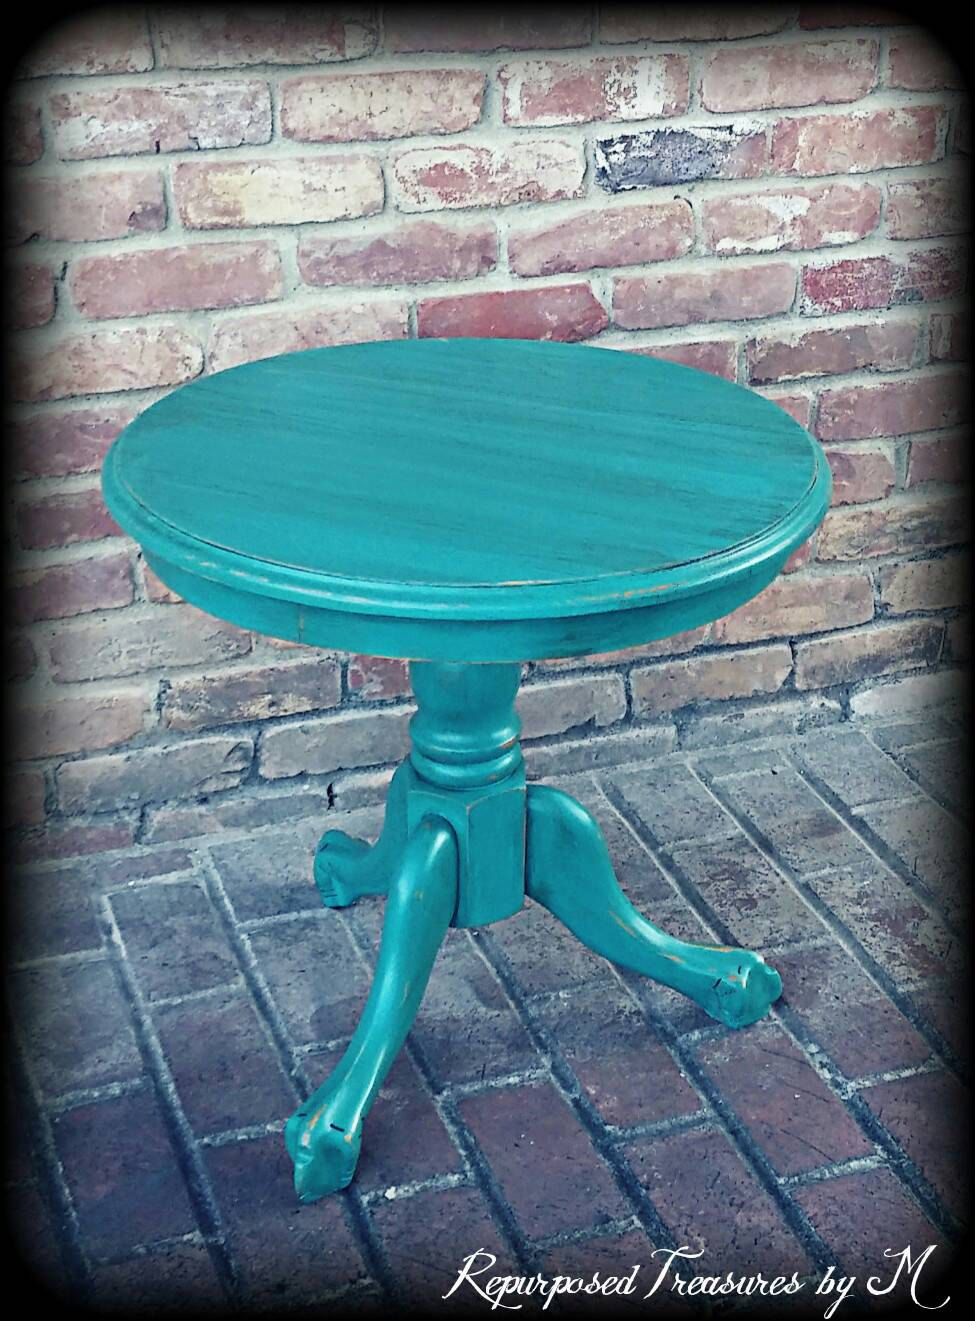 sold vintage accent table turquoise shabby chic etsy fullxfull fvrw teal modern coffee with drawers antique oak bedside tables drop leaf dining room rustic gray tread plates